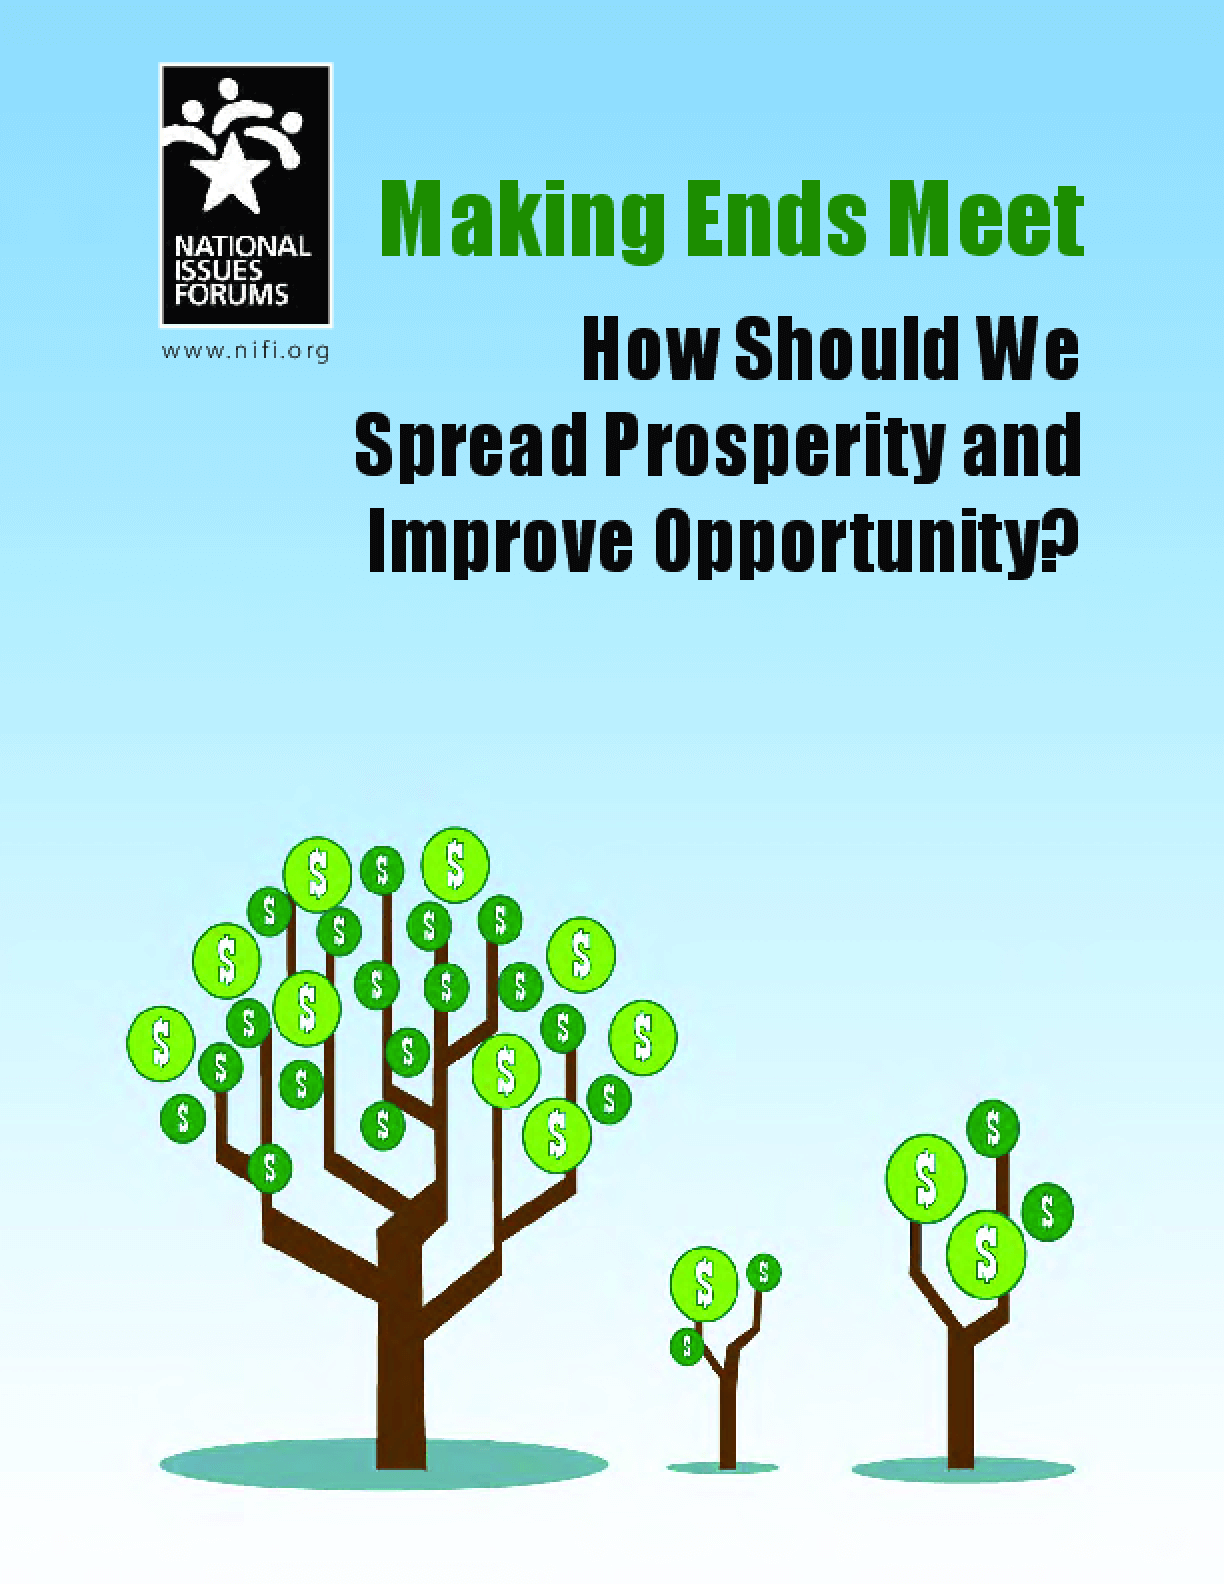 Making Ends Meet: How Should We Spread Prosperity and Improve Opportunity